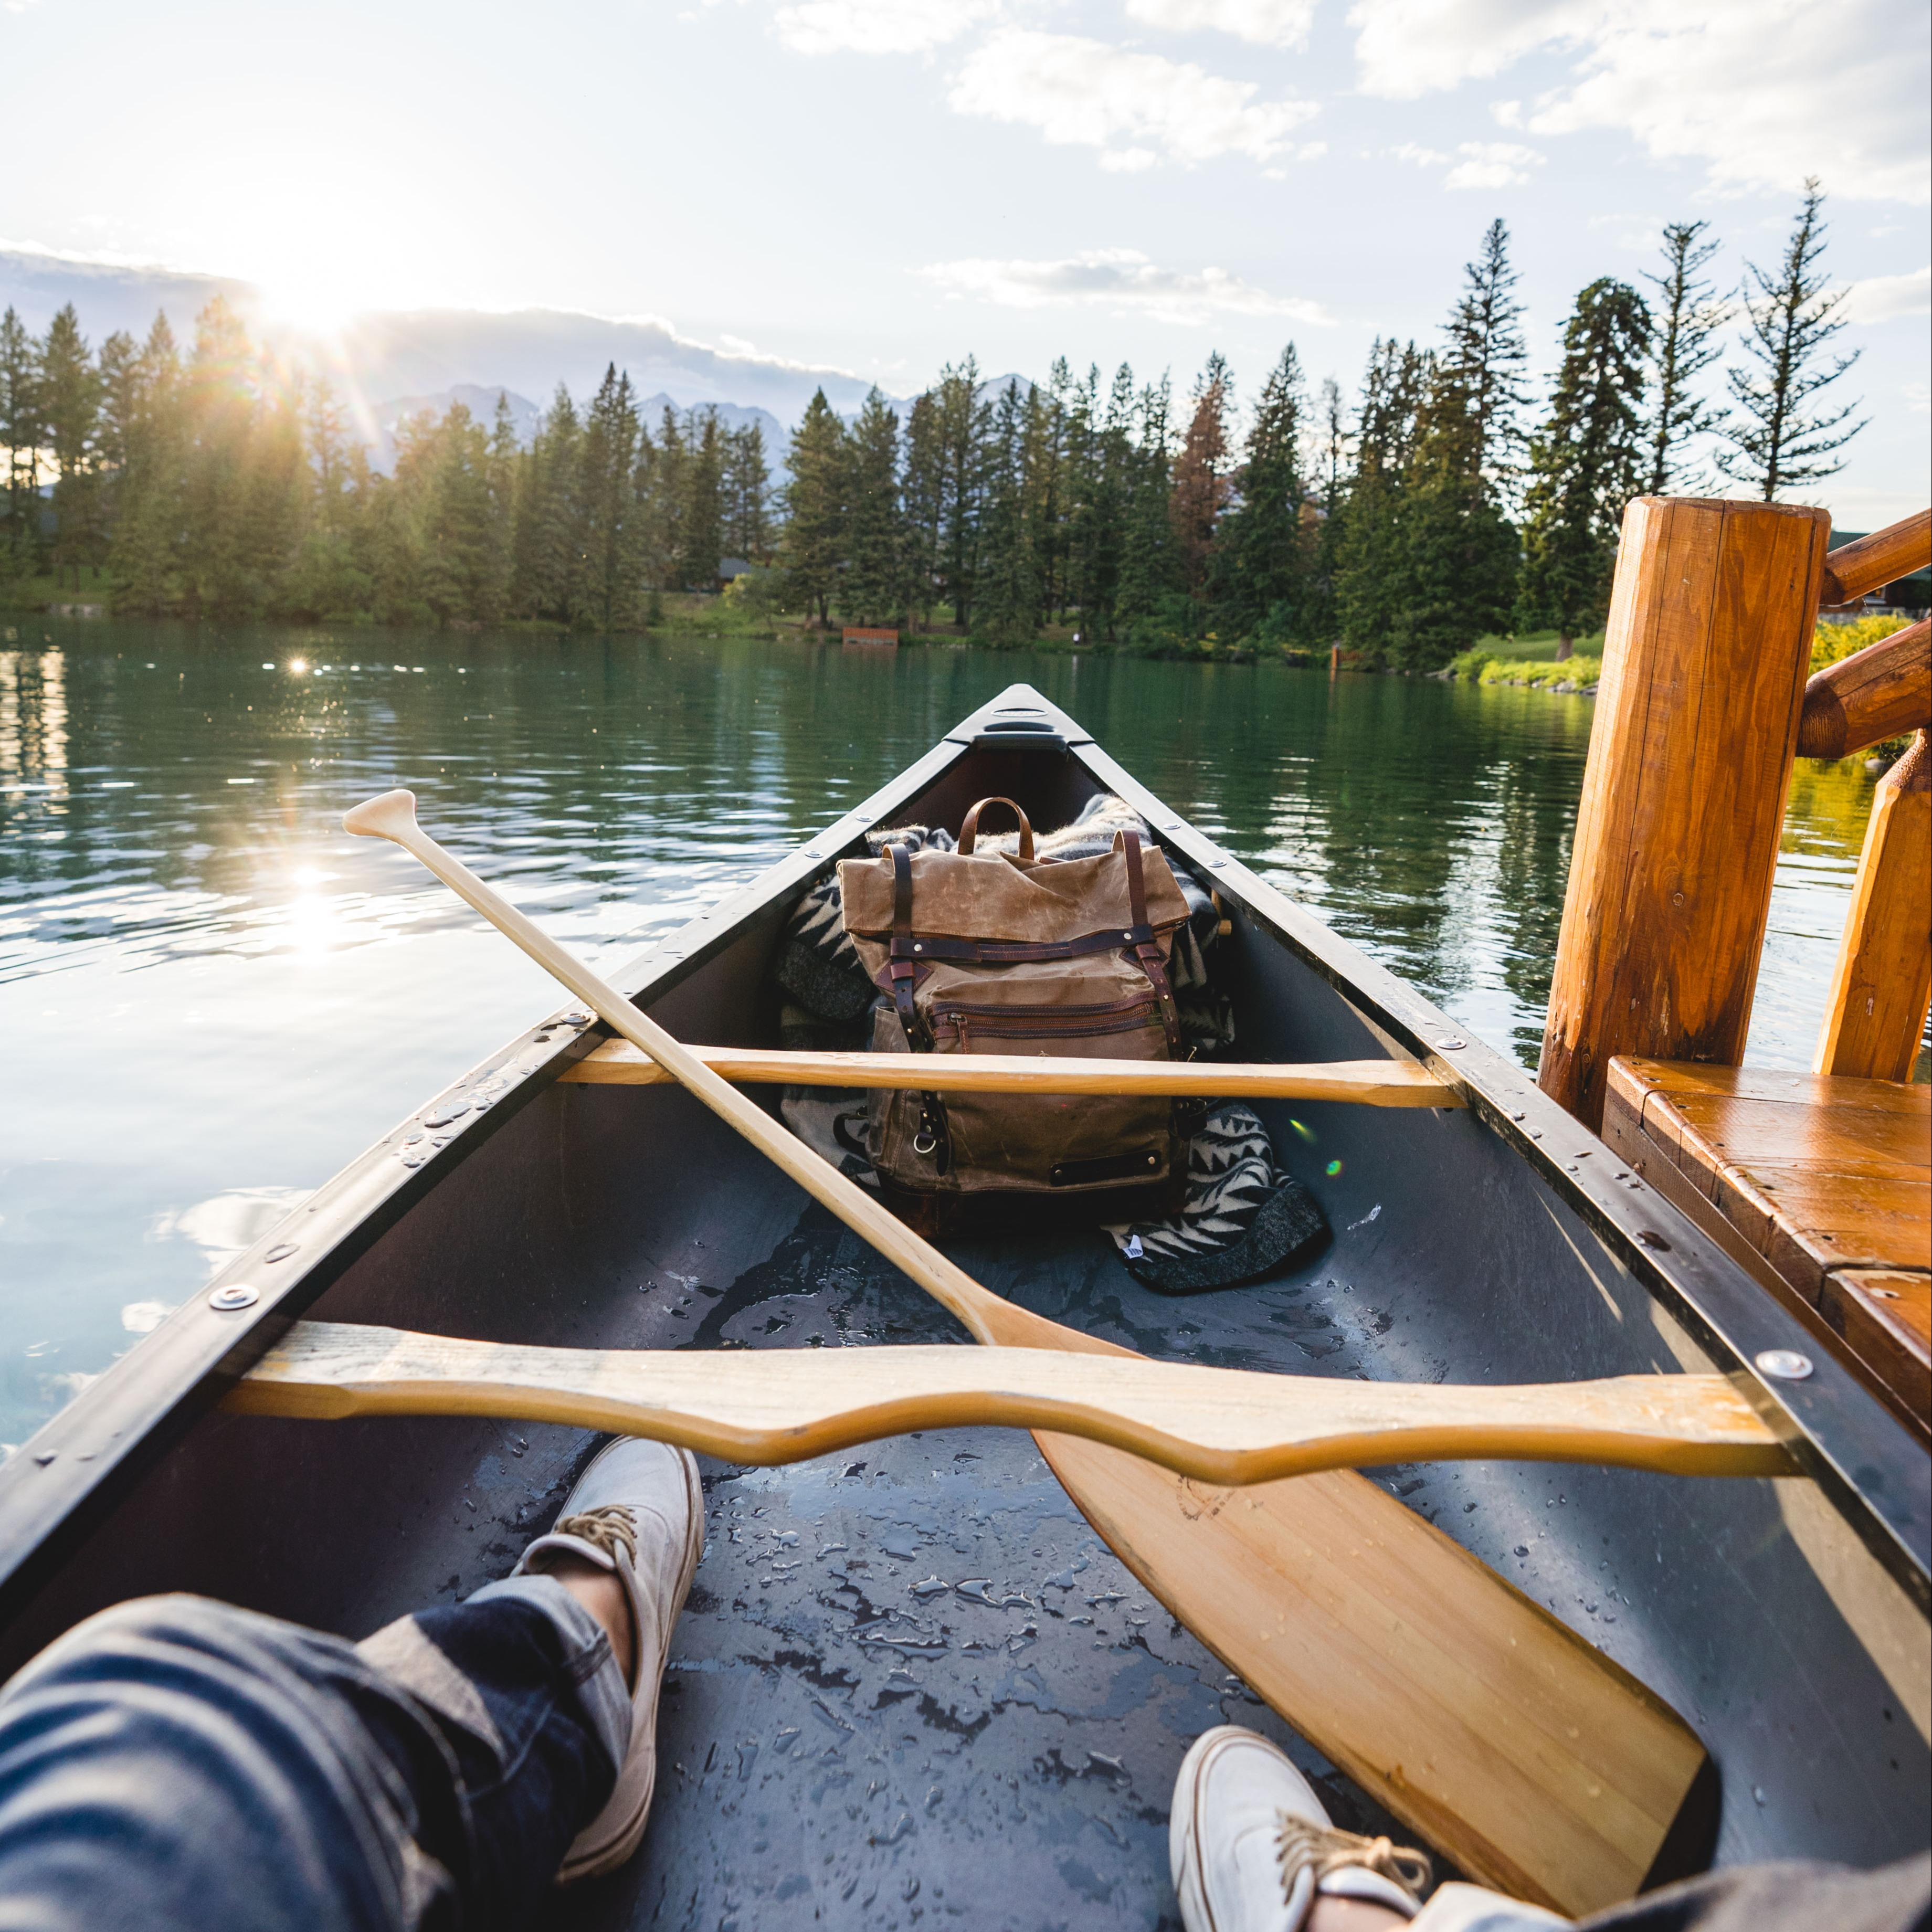 Swoop | picture of a person inside a canoe at the Fairmont Jasper Park Lodge on Lac Beauvert, 3.5 hours drive from Edmonton